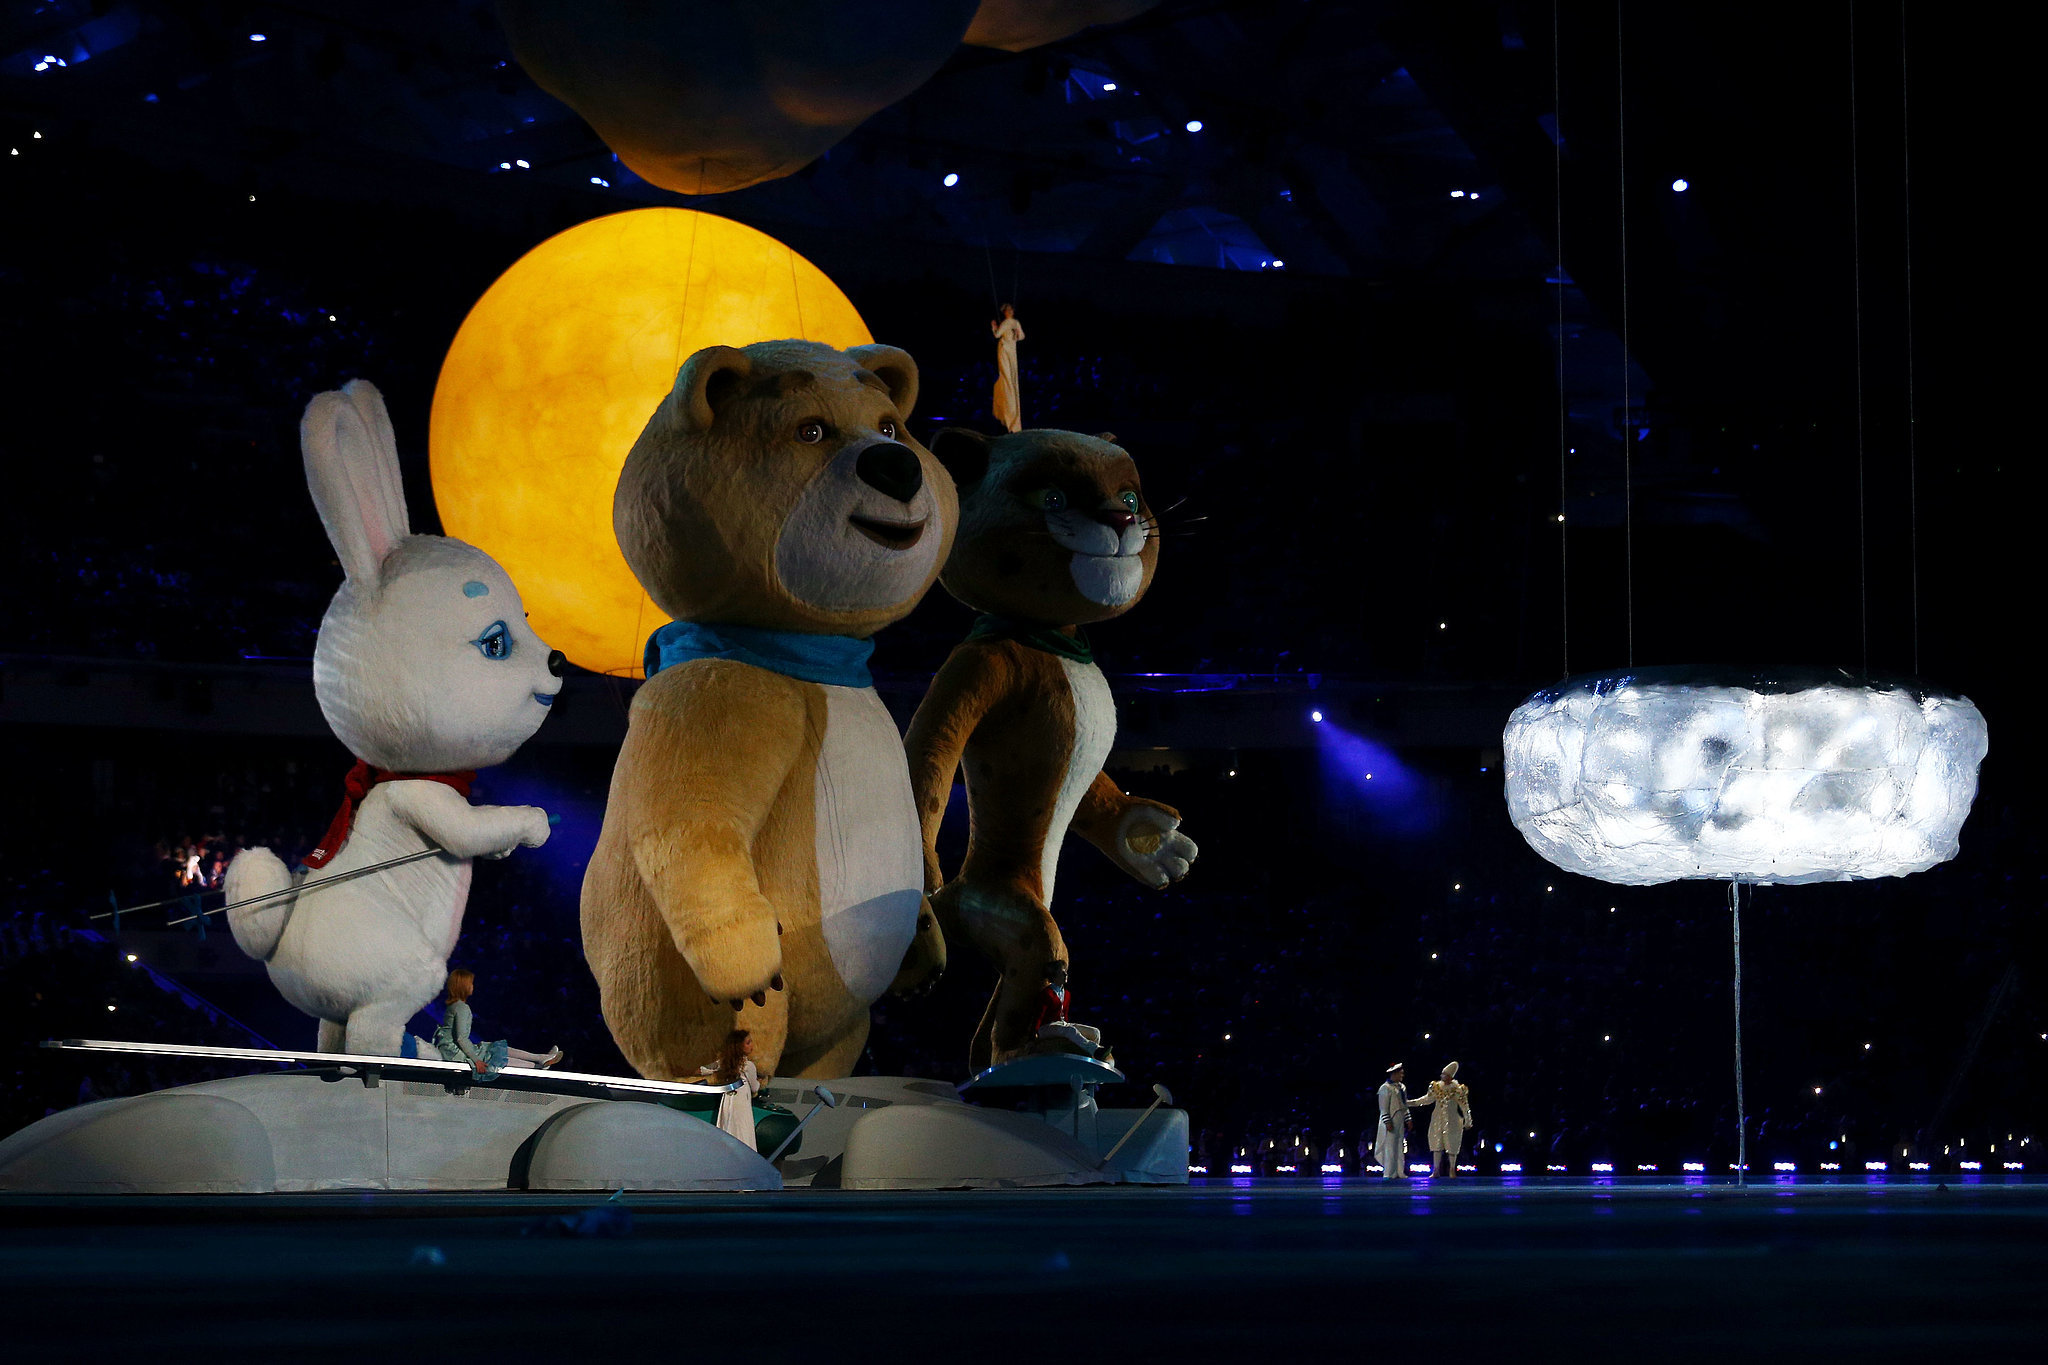 The Sochi mascots made their way to the center of the arena.